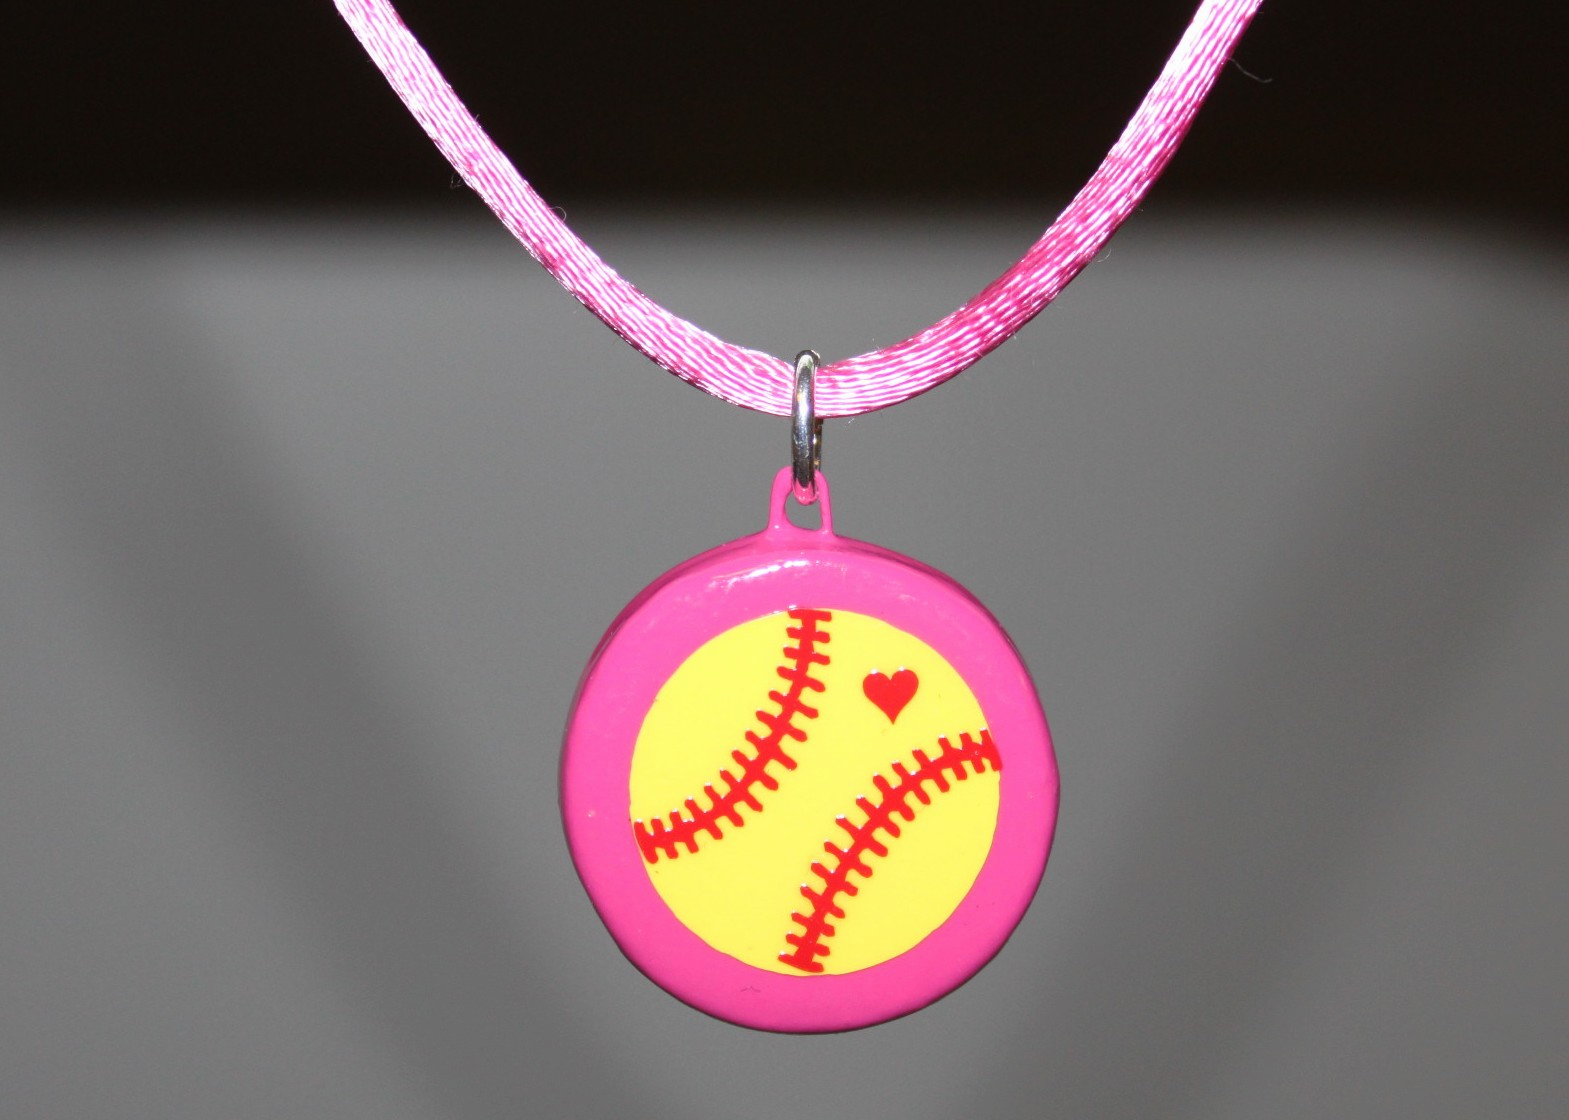 listing glove leather baseball black or il necklace softball fullxfull charm cord with